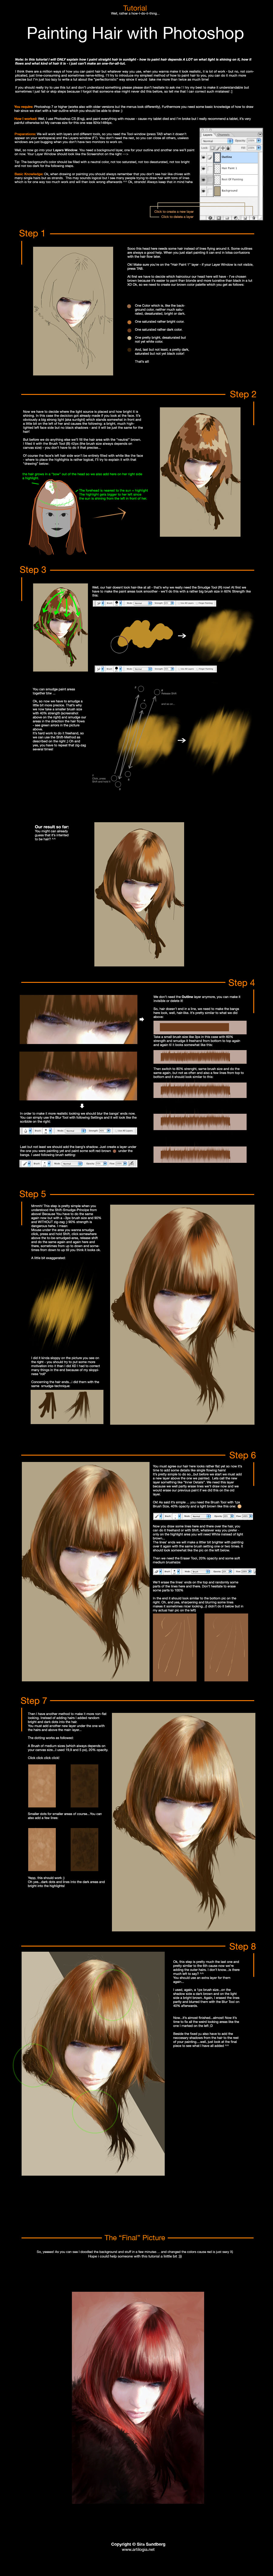 Photoshop - Painting Hair